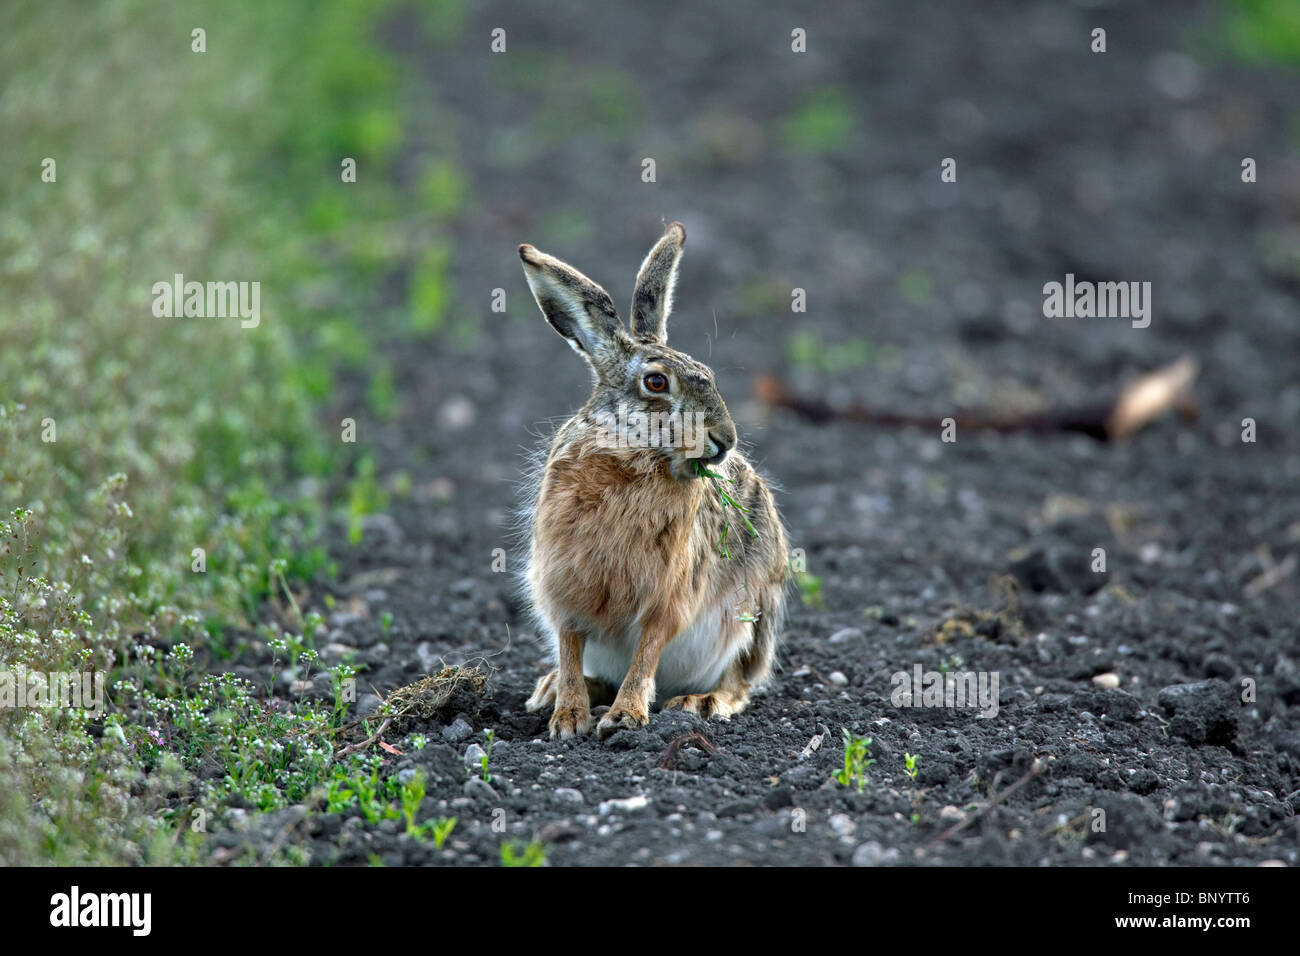 Europese haas (Lepus europaeus) etend in veld, Duitsland European Brown Hare (Lepus europaeus) eating in field, - Stock Image